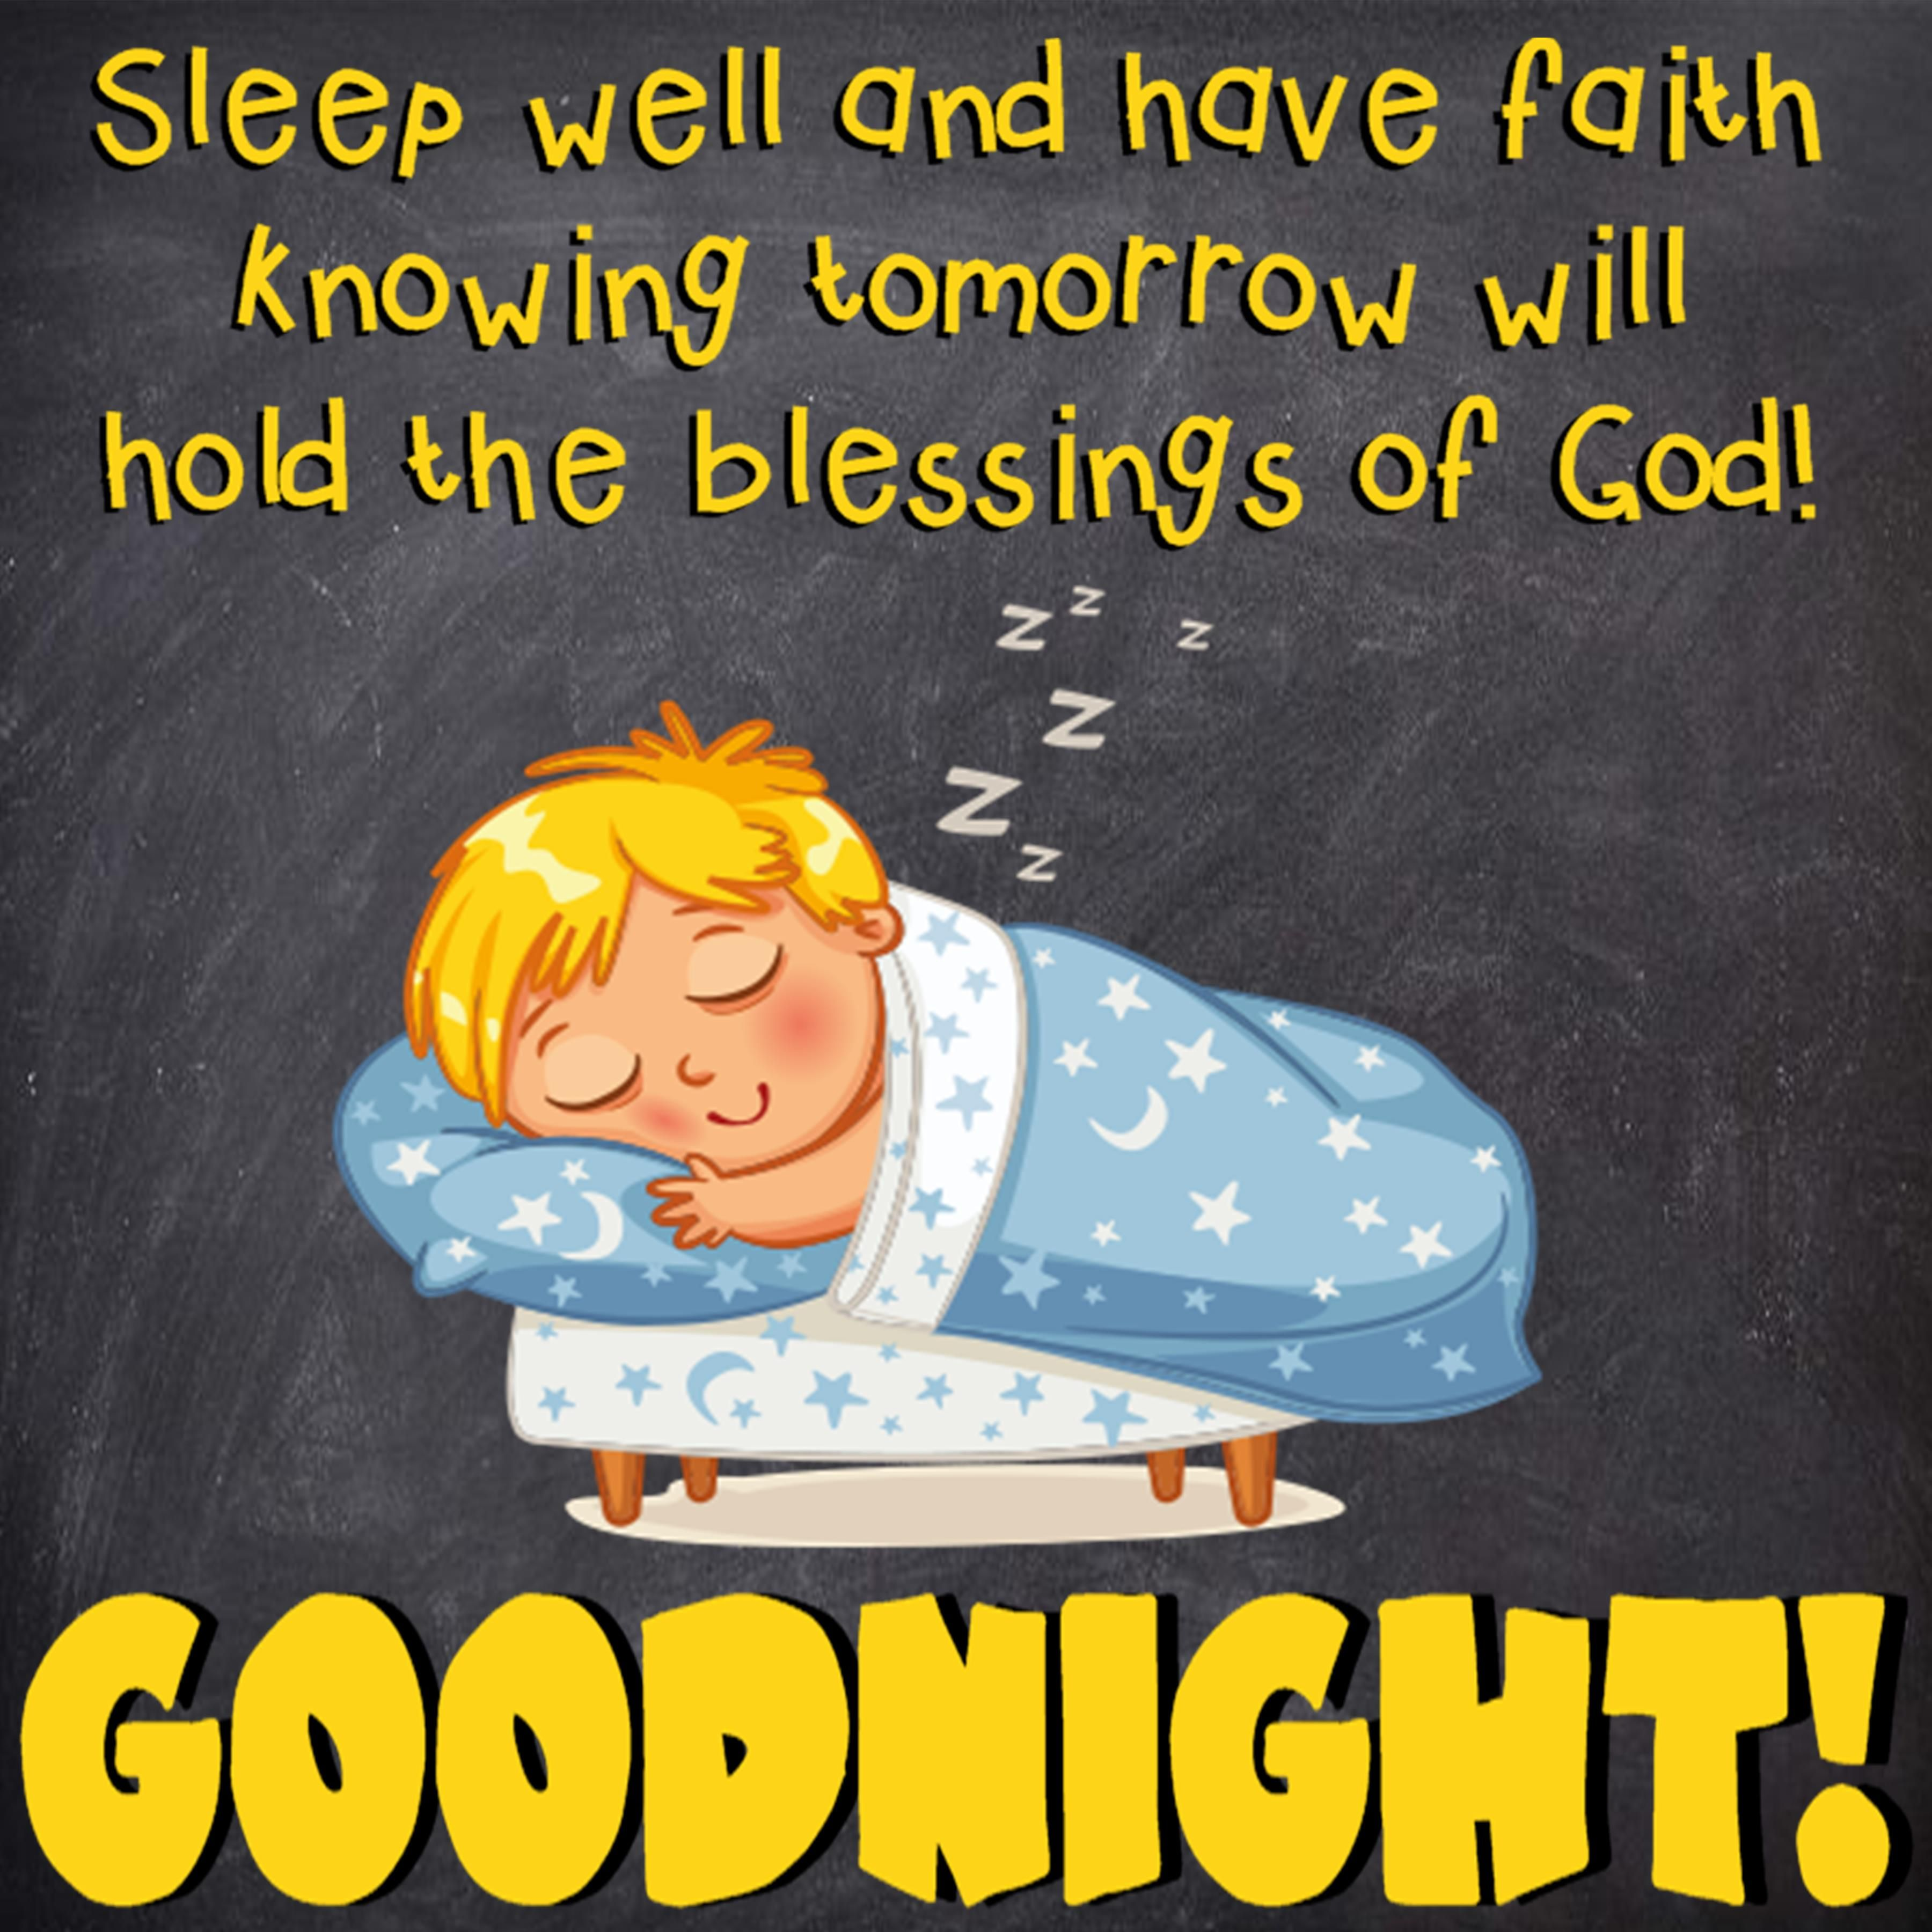 Sleep Well And Have Faith Knowing Tomorrow Will Hold The Blessings Of God Goodnight Good Night Prayer Good Night Blessings Night Prayer For Kids